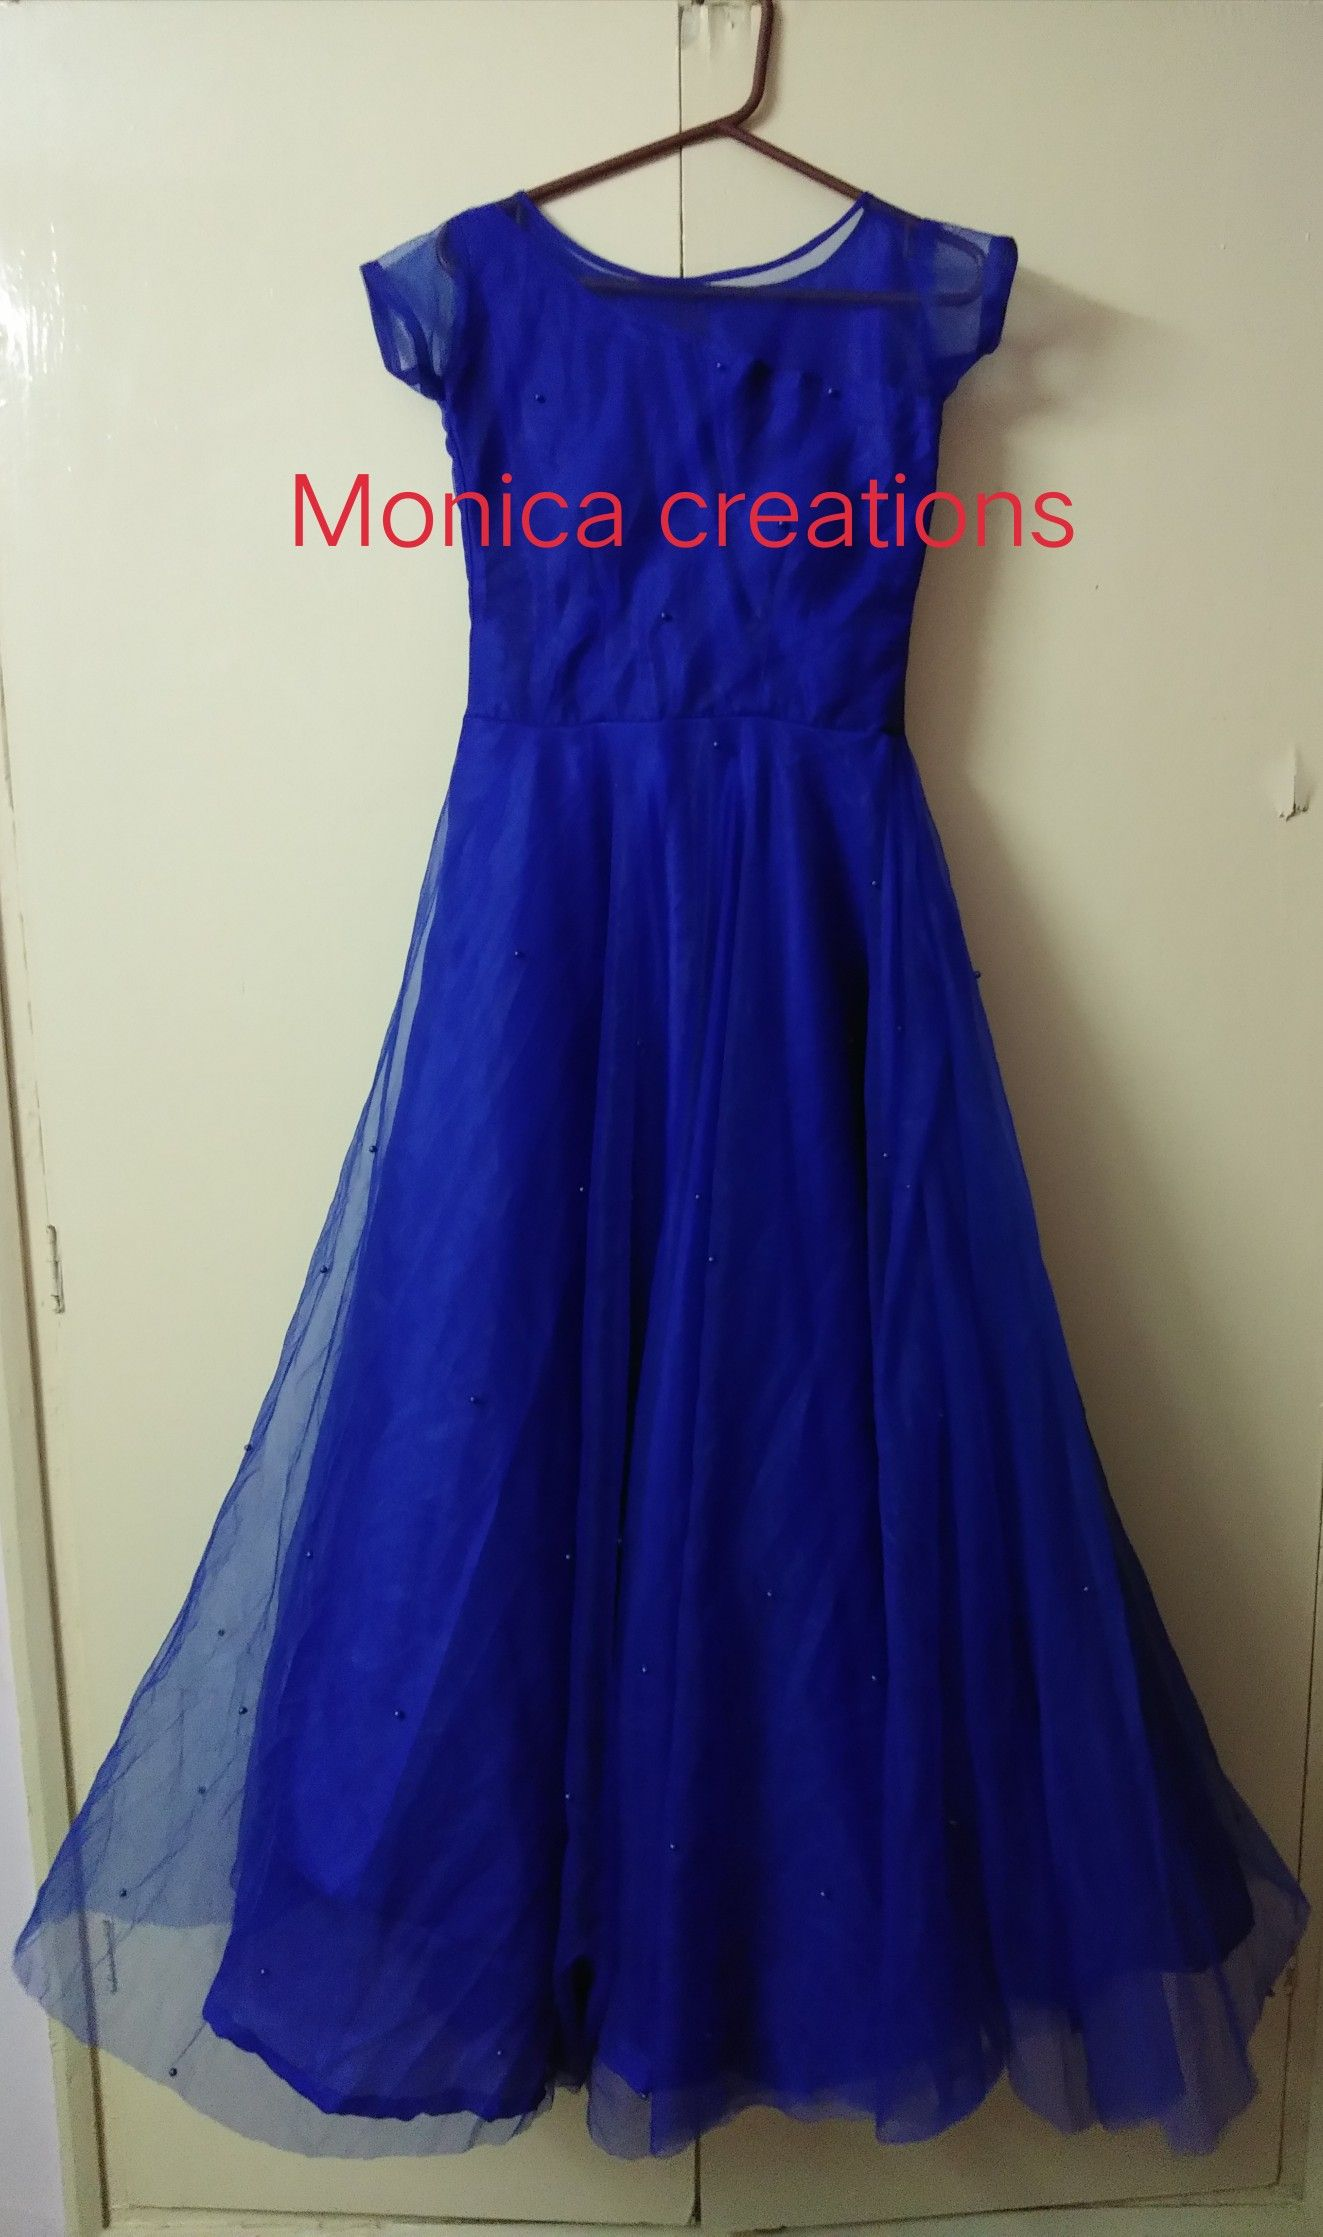 Monica's Blue Dress